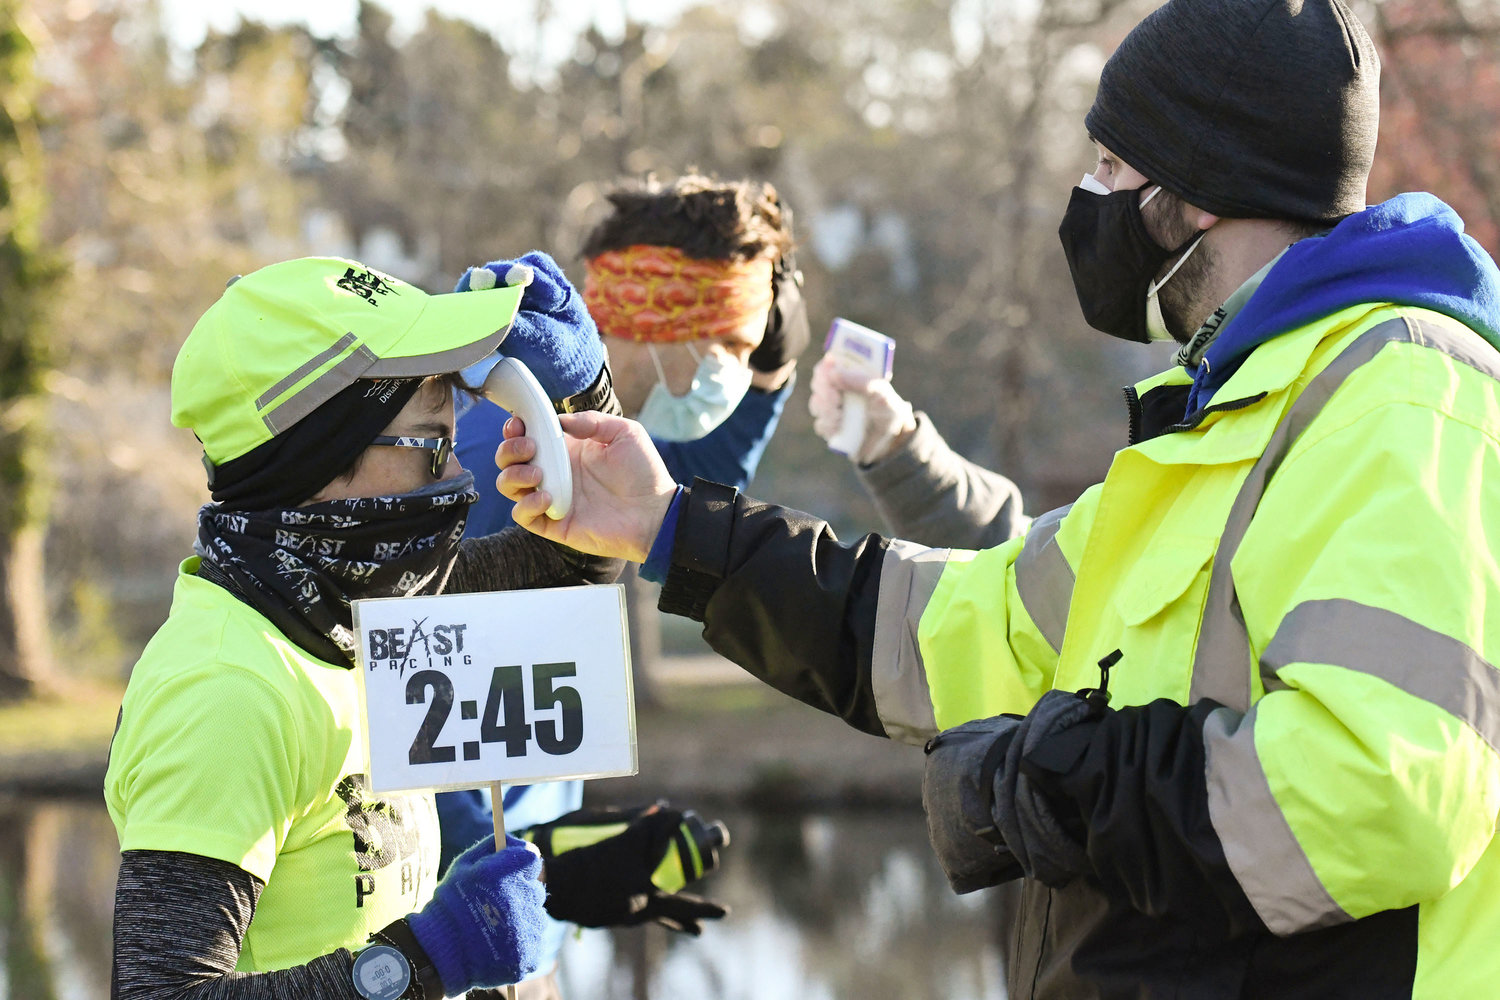 Ben Pittsley, right, does temperature checks on runners.